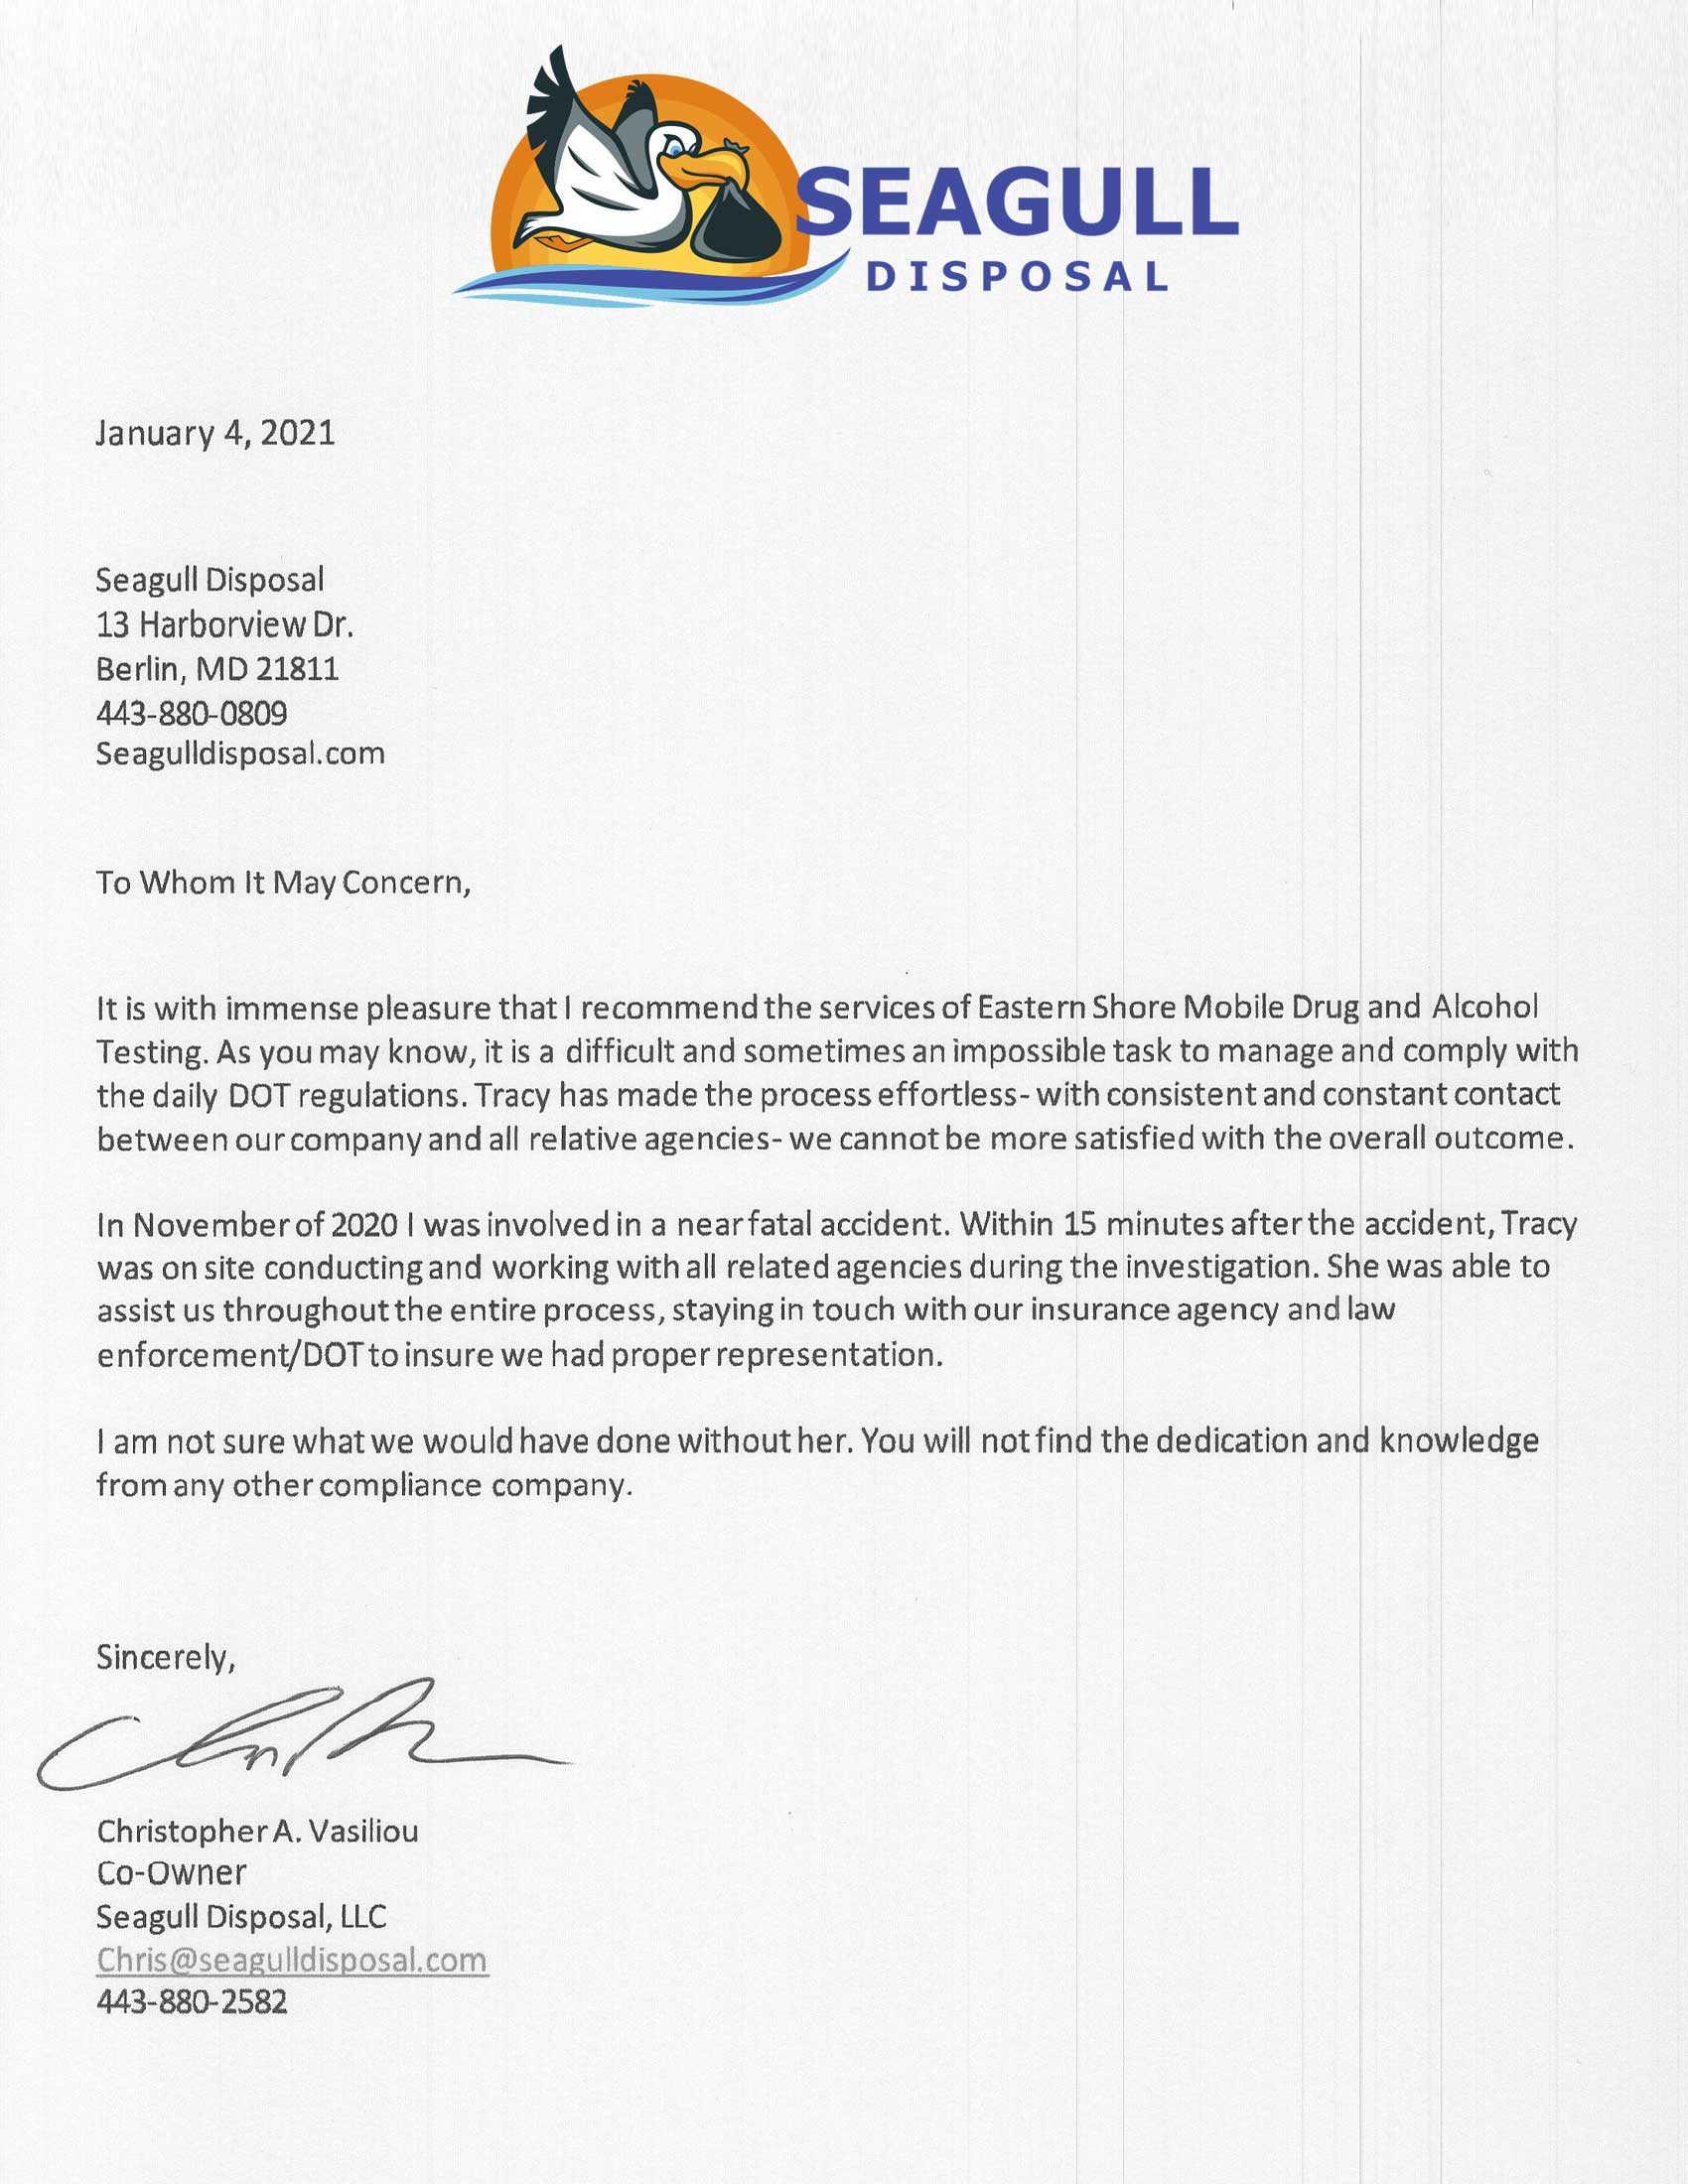 Seagull Disposal Recommendation letter